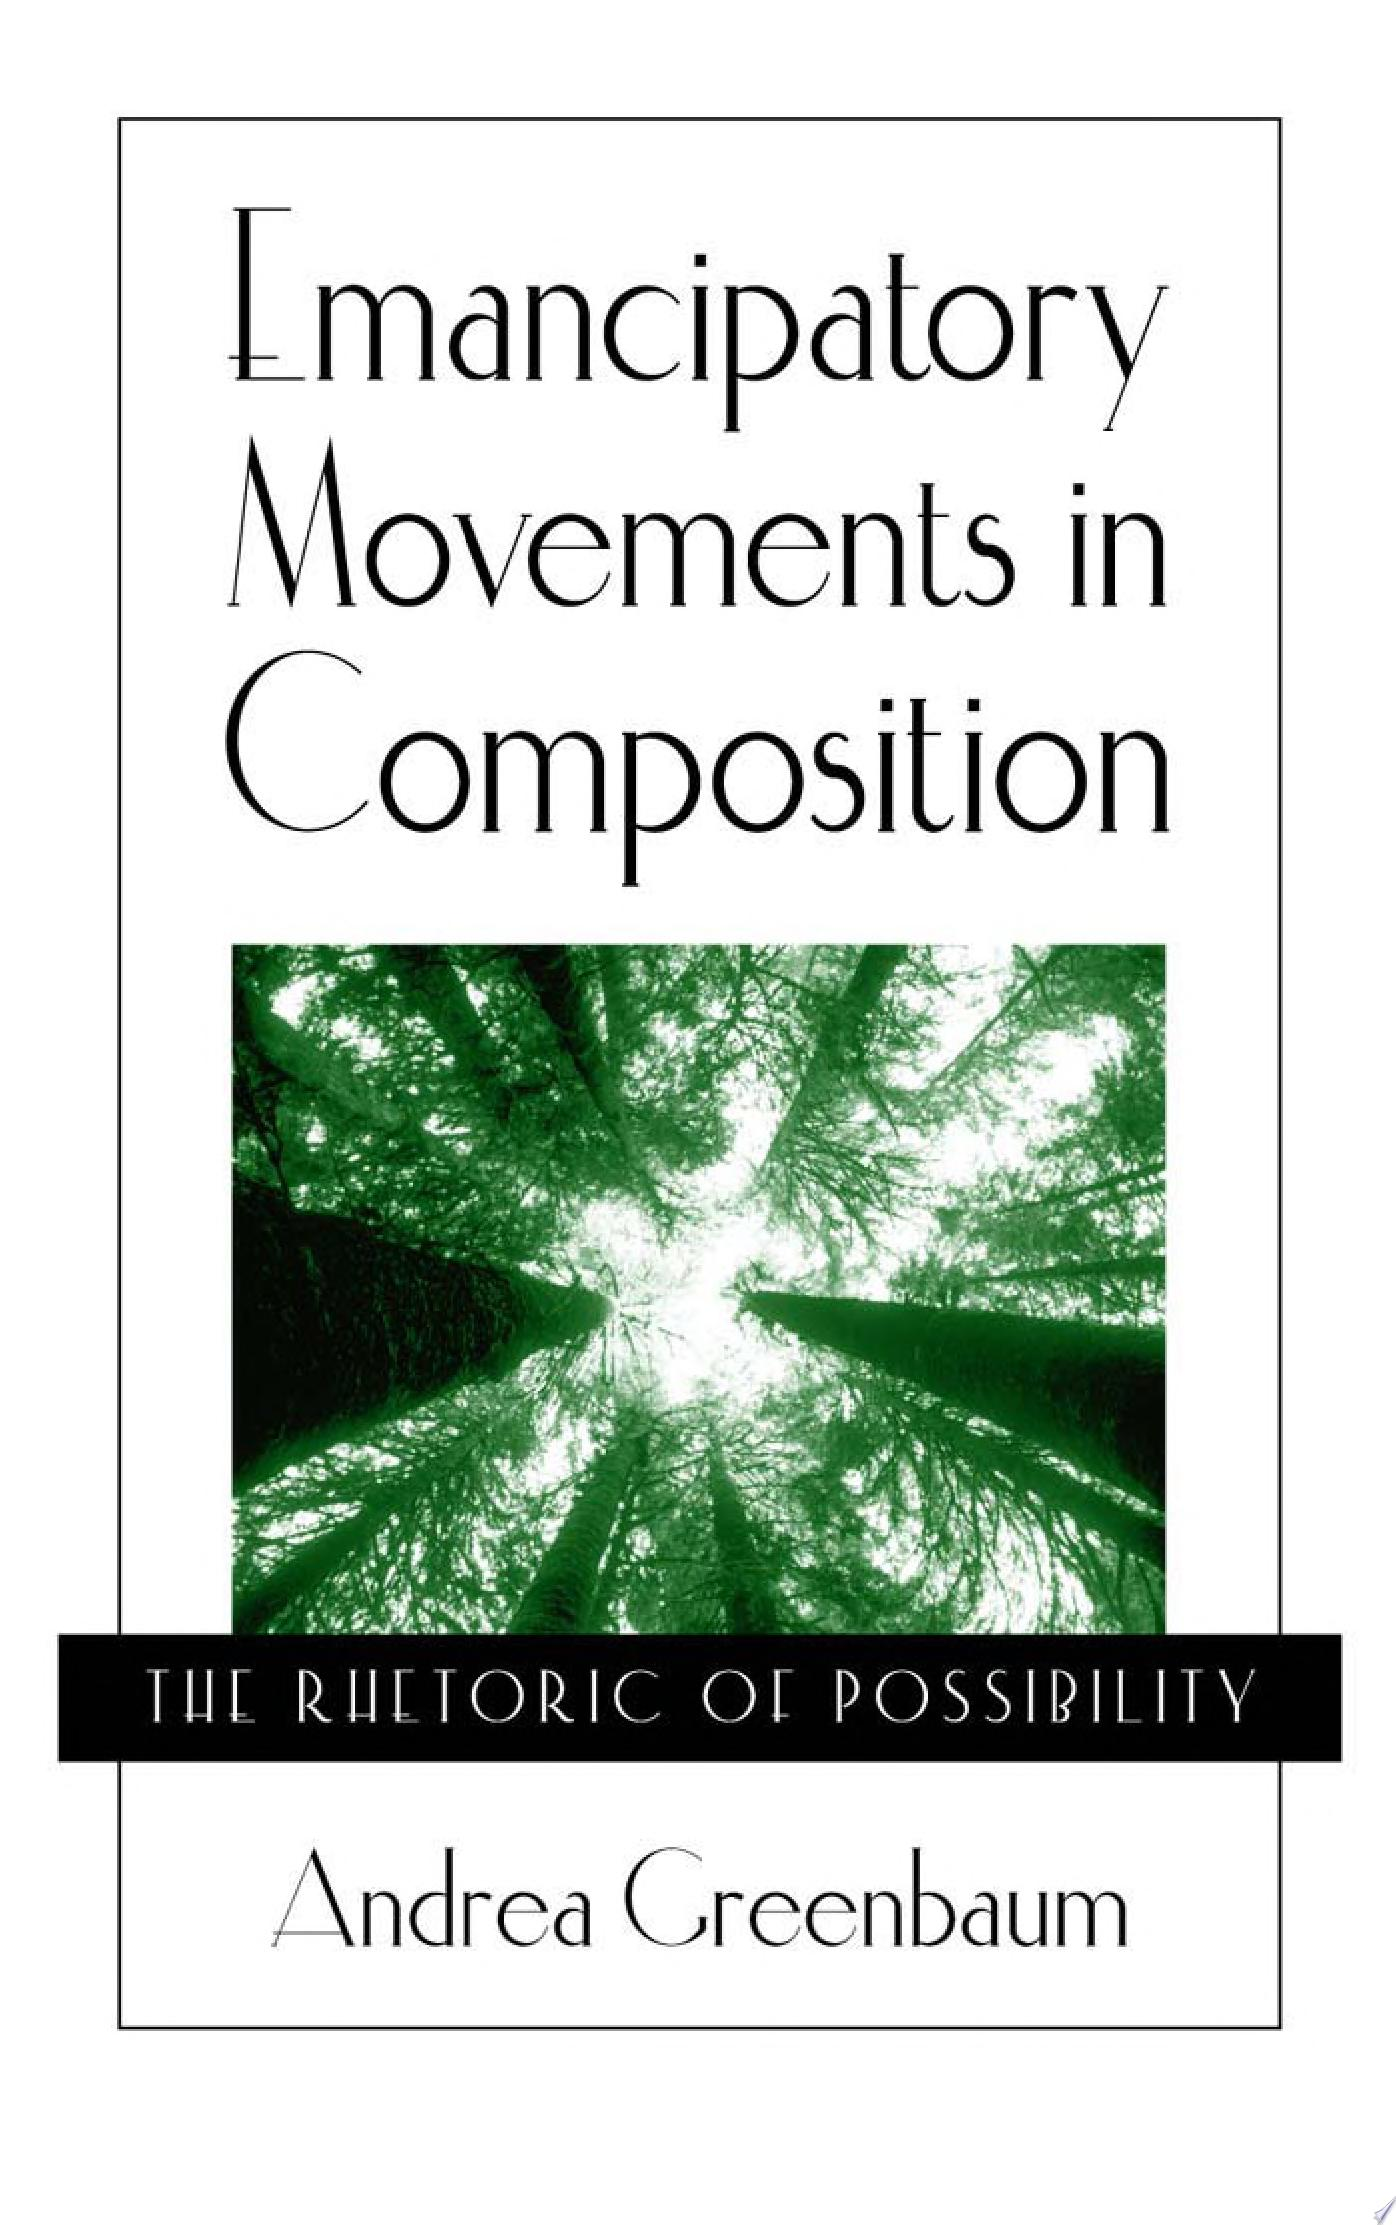 Emancipatory Movements in Composition